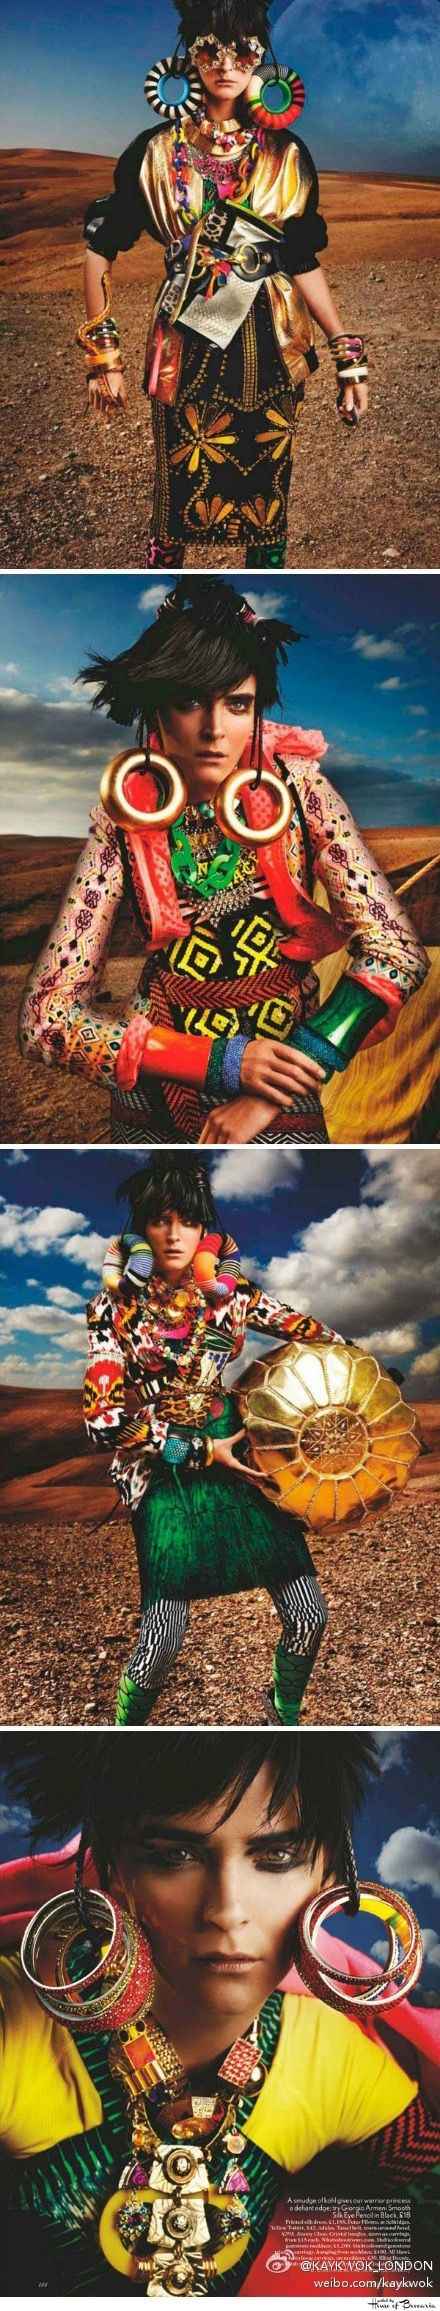 "~Vouge UK May 2012 ""High Plains Drifter"" - Model Carmen Kass - Photo by Mario Testino - Styled by Lucinda Chambe 